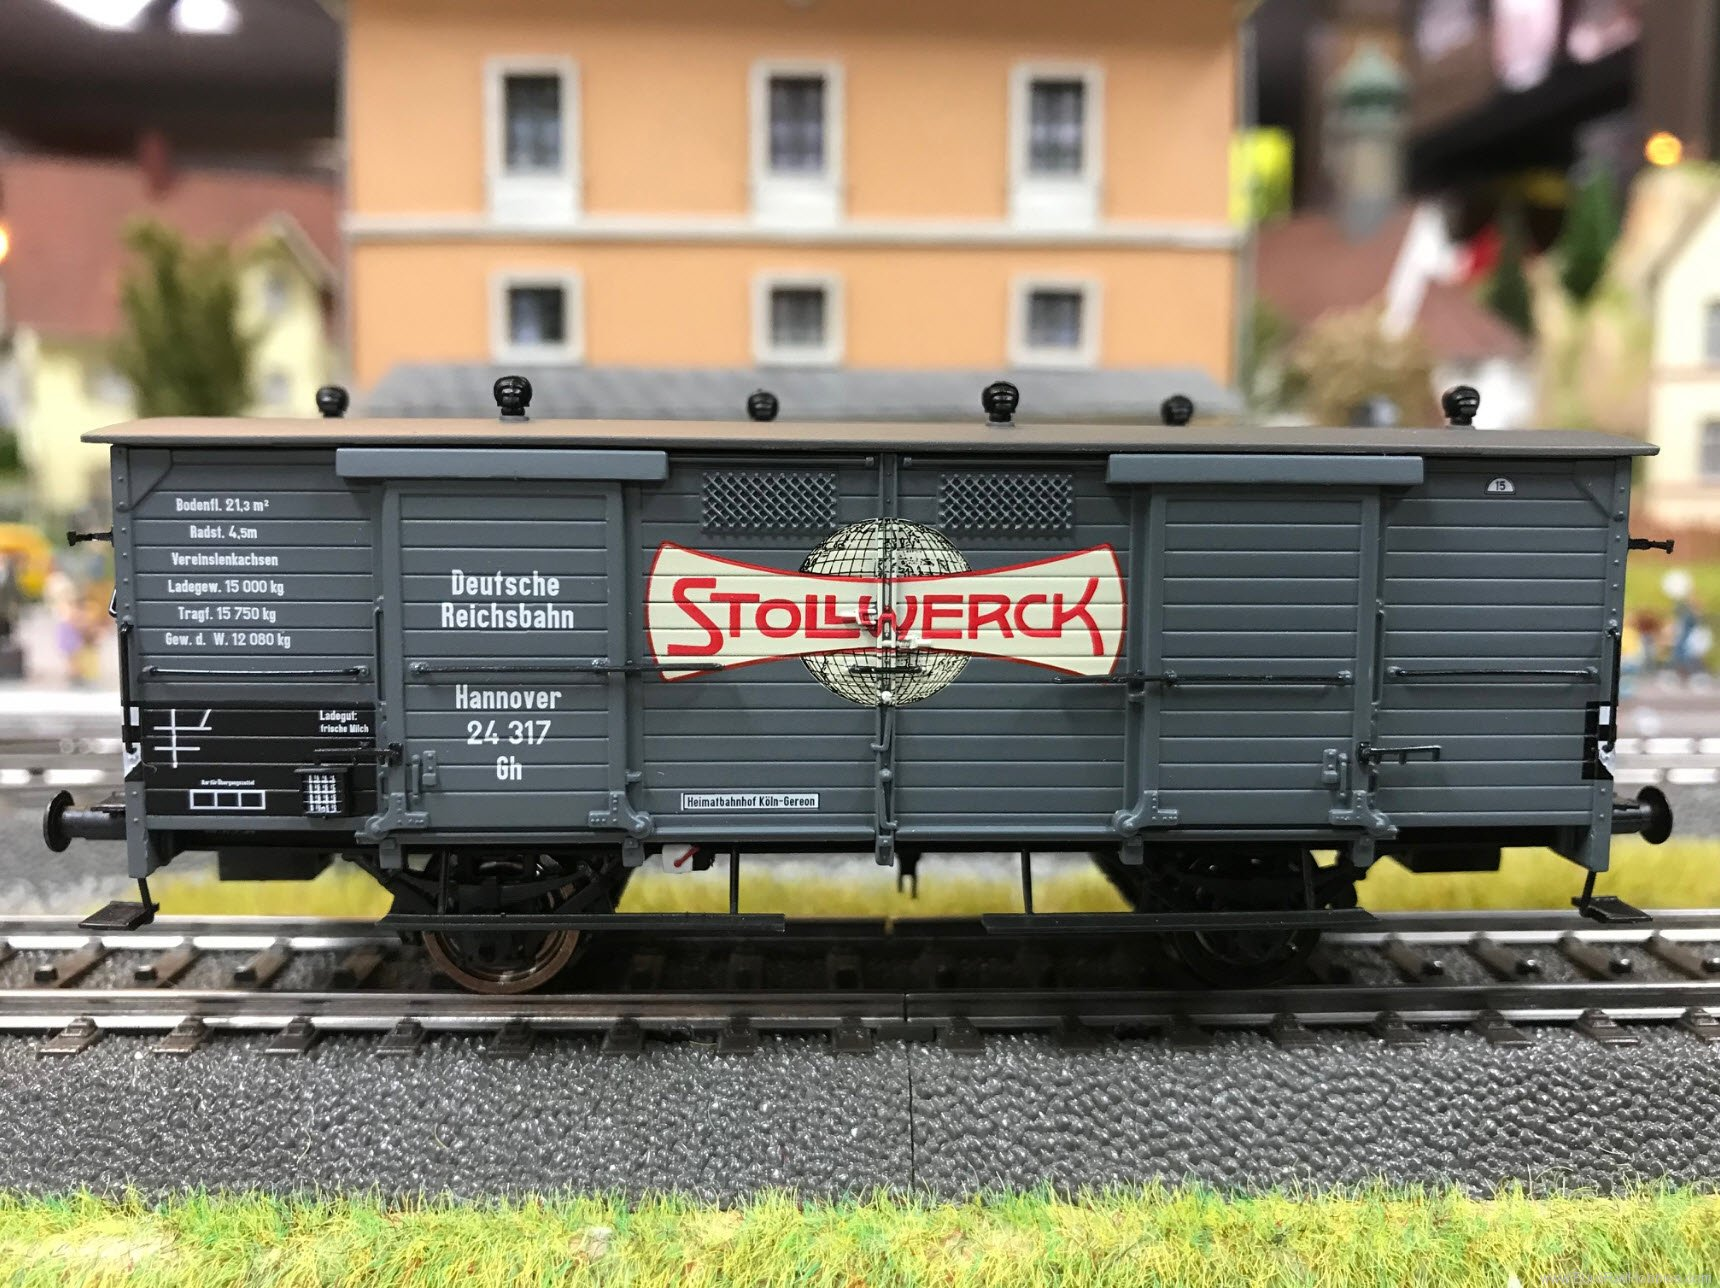 Brawa 48660 2017 Toyfair HO DRG Gh STOLLWERCK Freight Mil